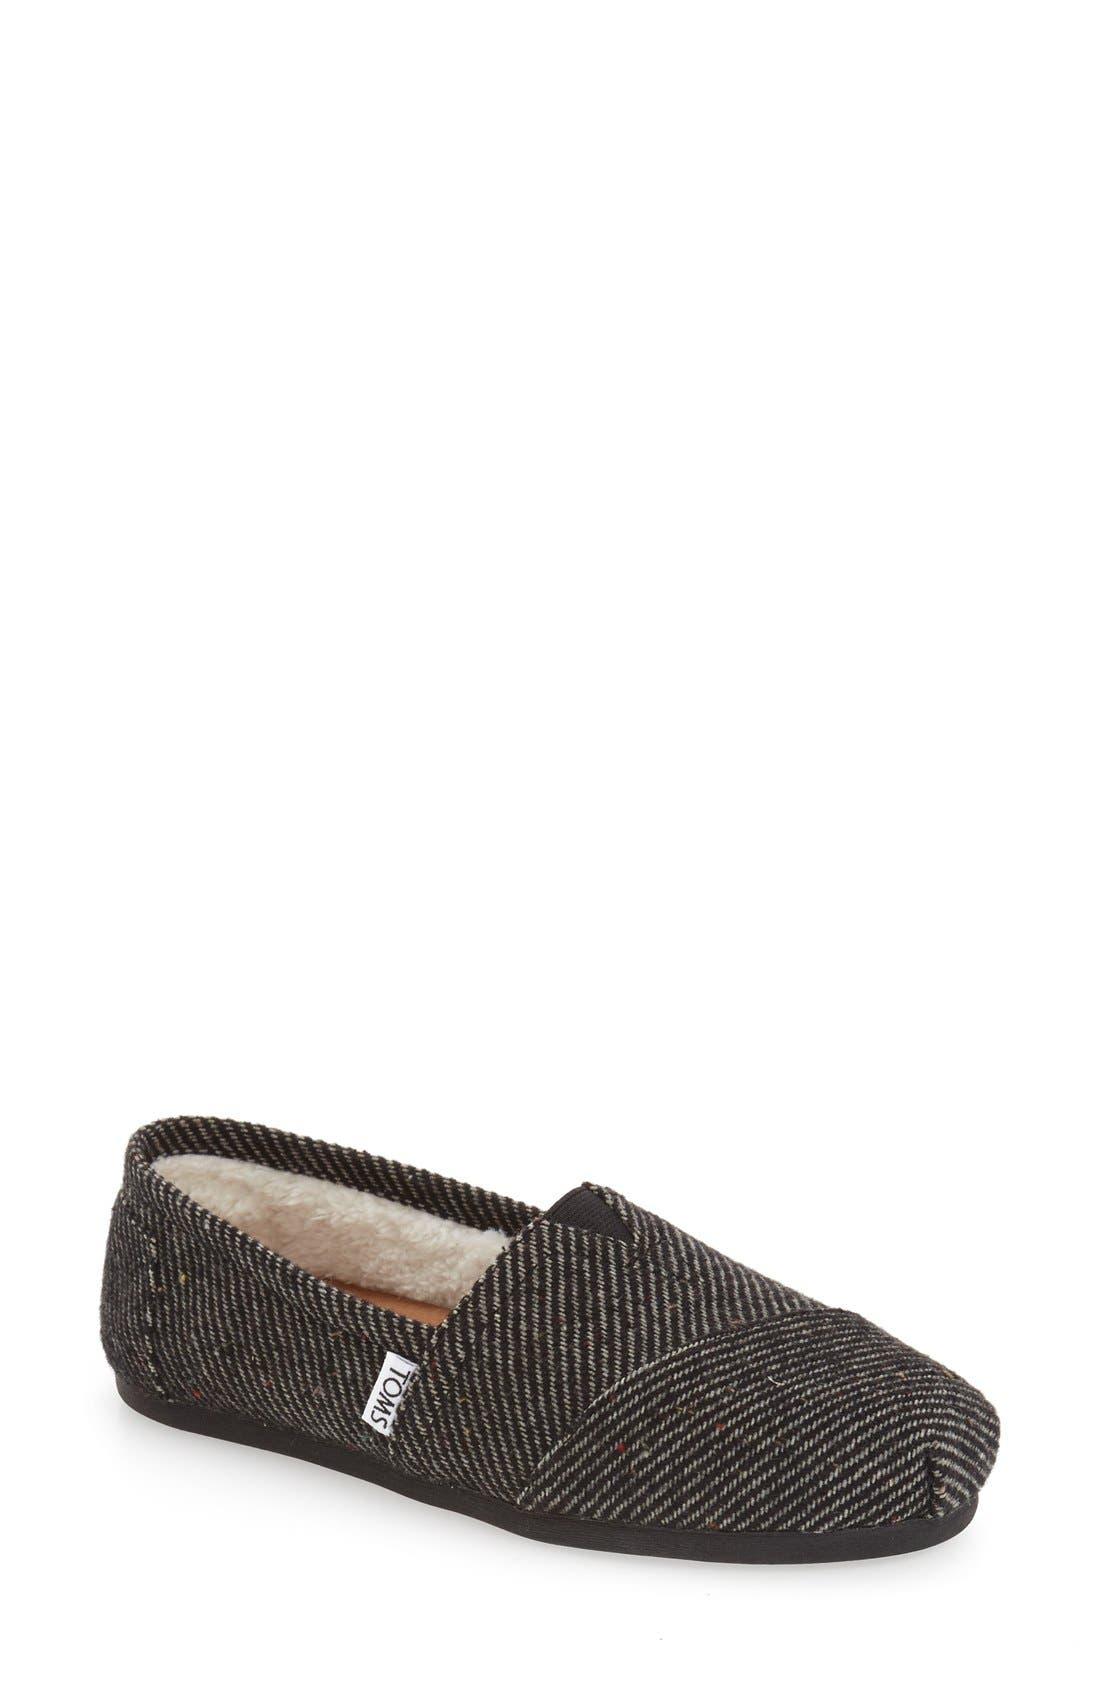 Main Image - TOMS Speckled Classic Slip-On (Women)